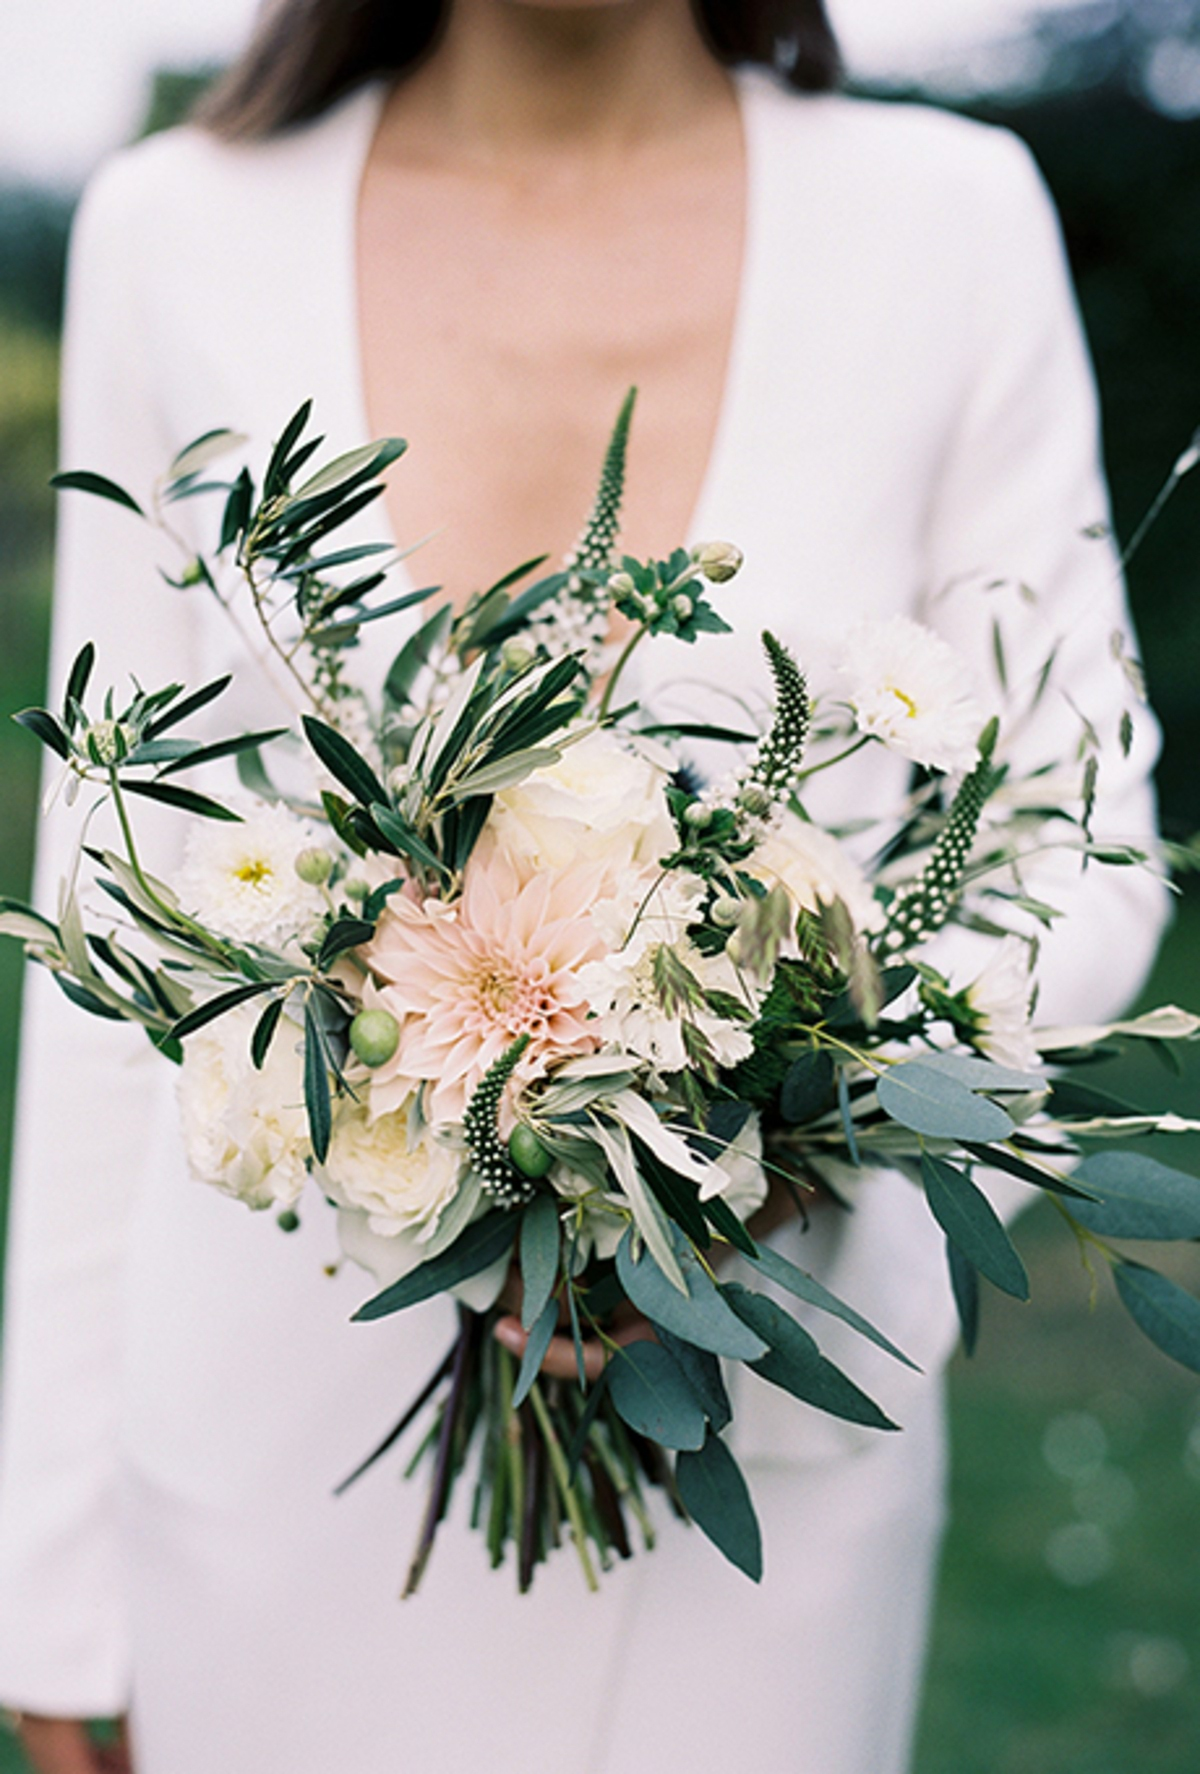 Herb-Wedding-Bouquets-Victoria-Phipps-Photography